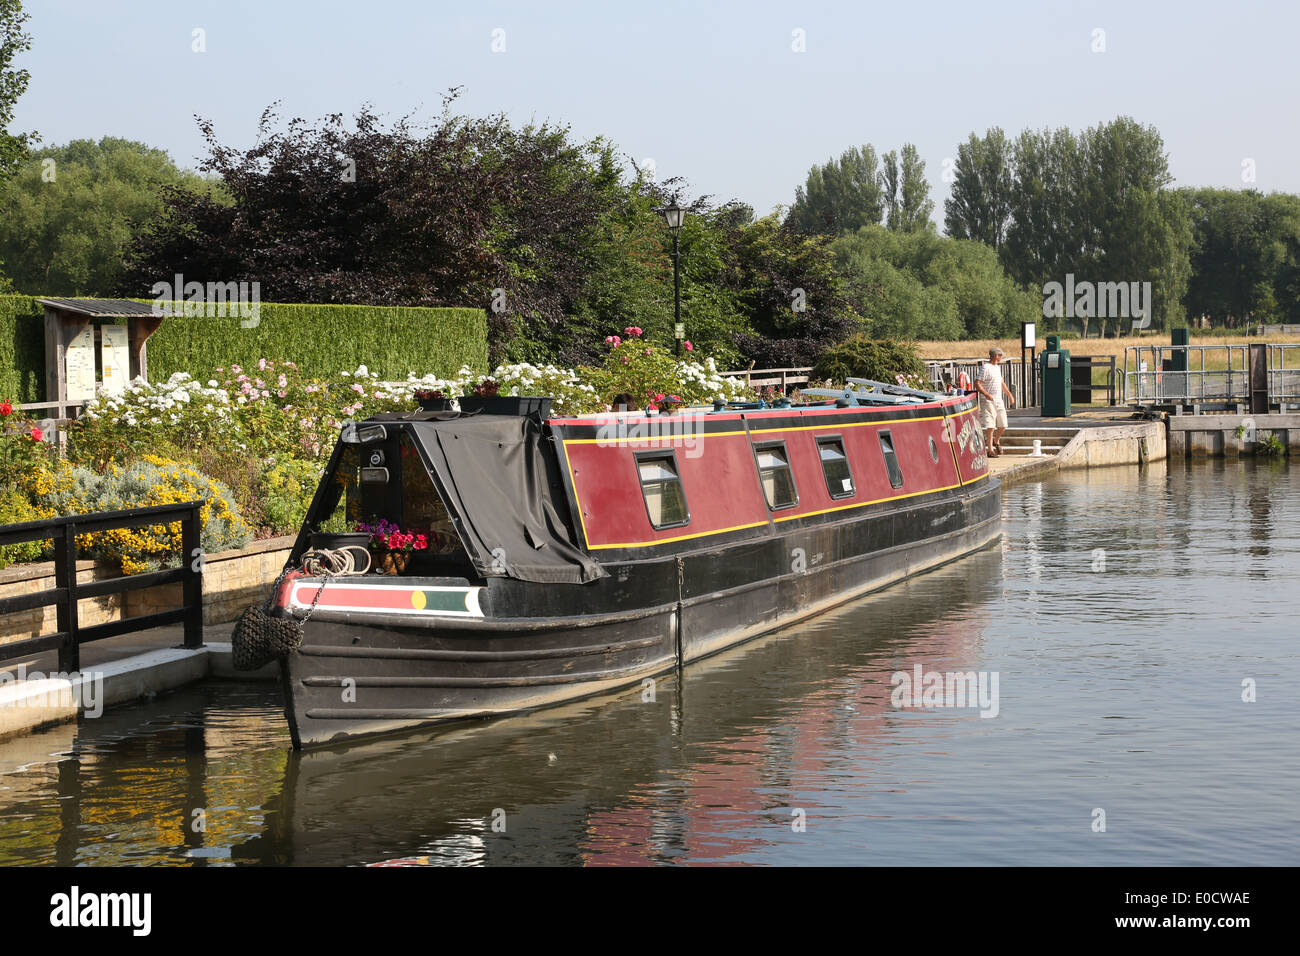 Narrowboat Sandford Lock River Thames Oxfordshire - Stock Image